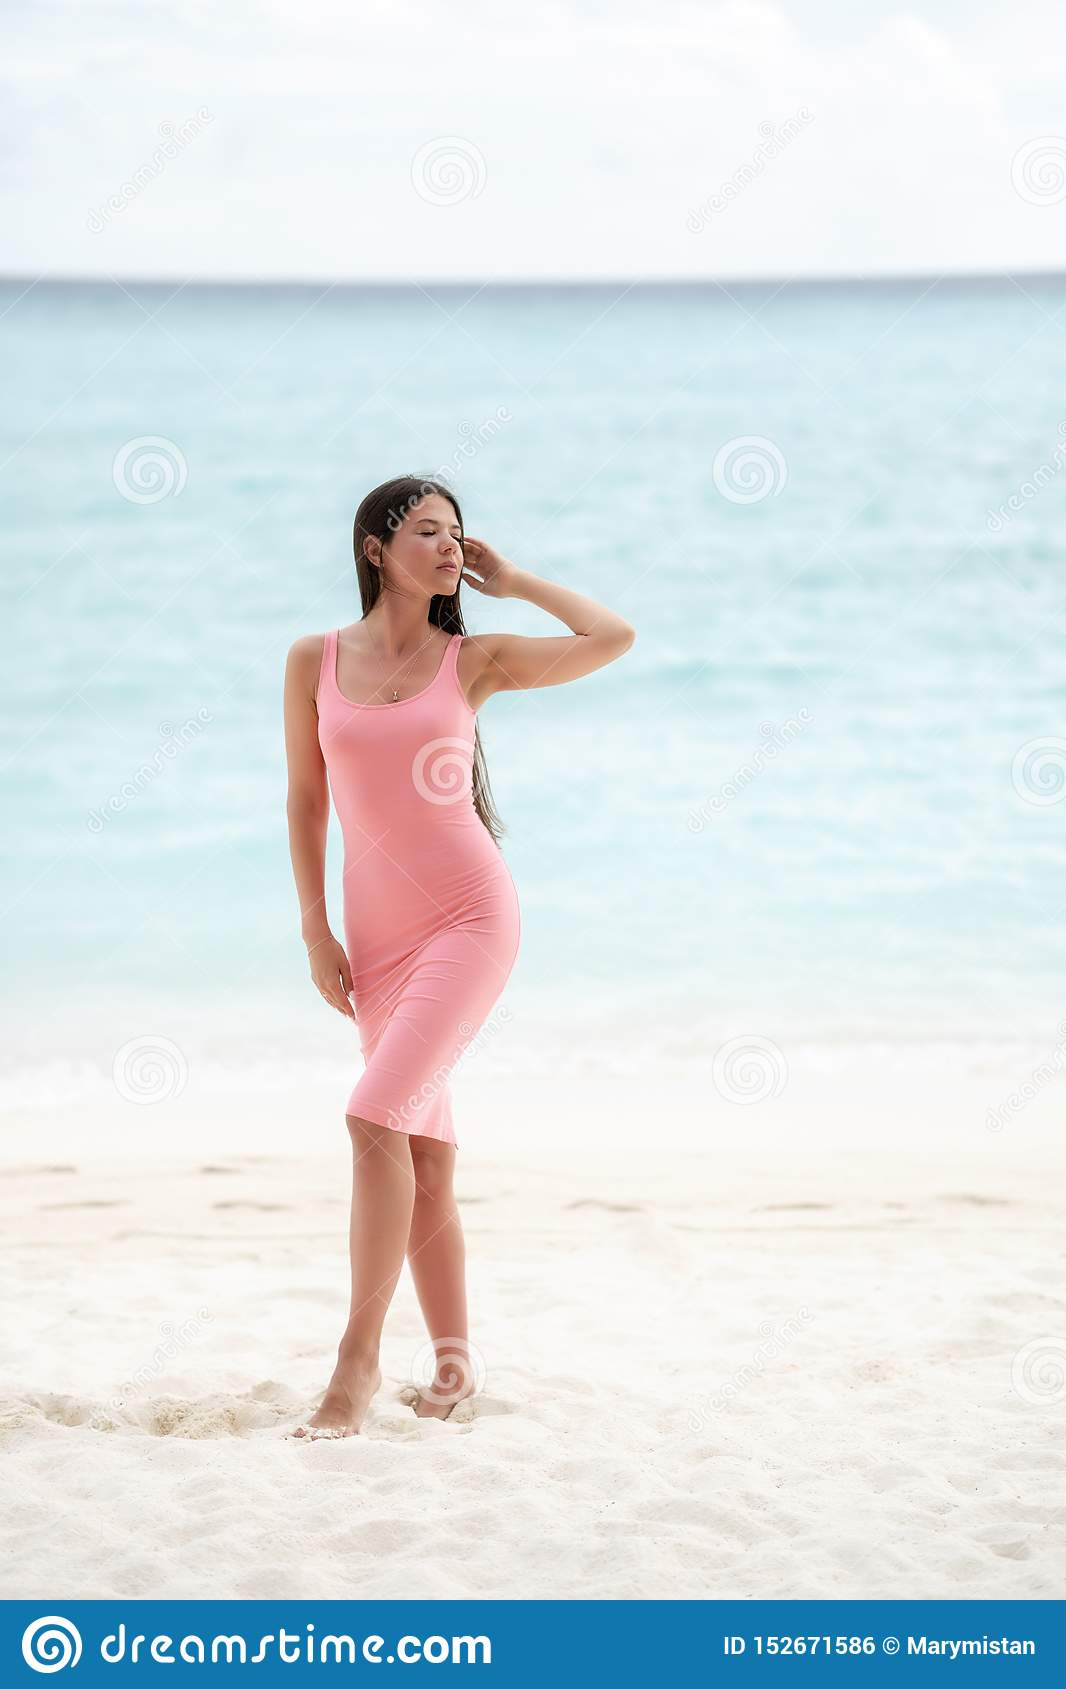 The brunette in a pink fitting dress walks on a snow-white beach